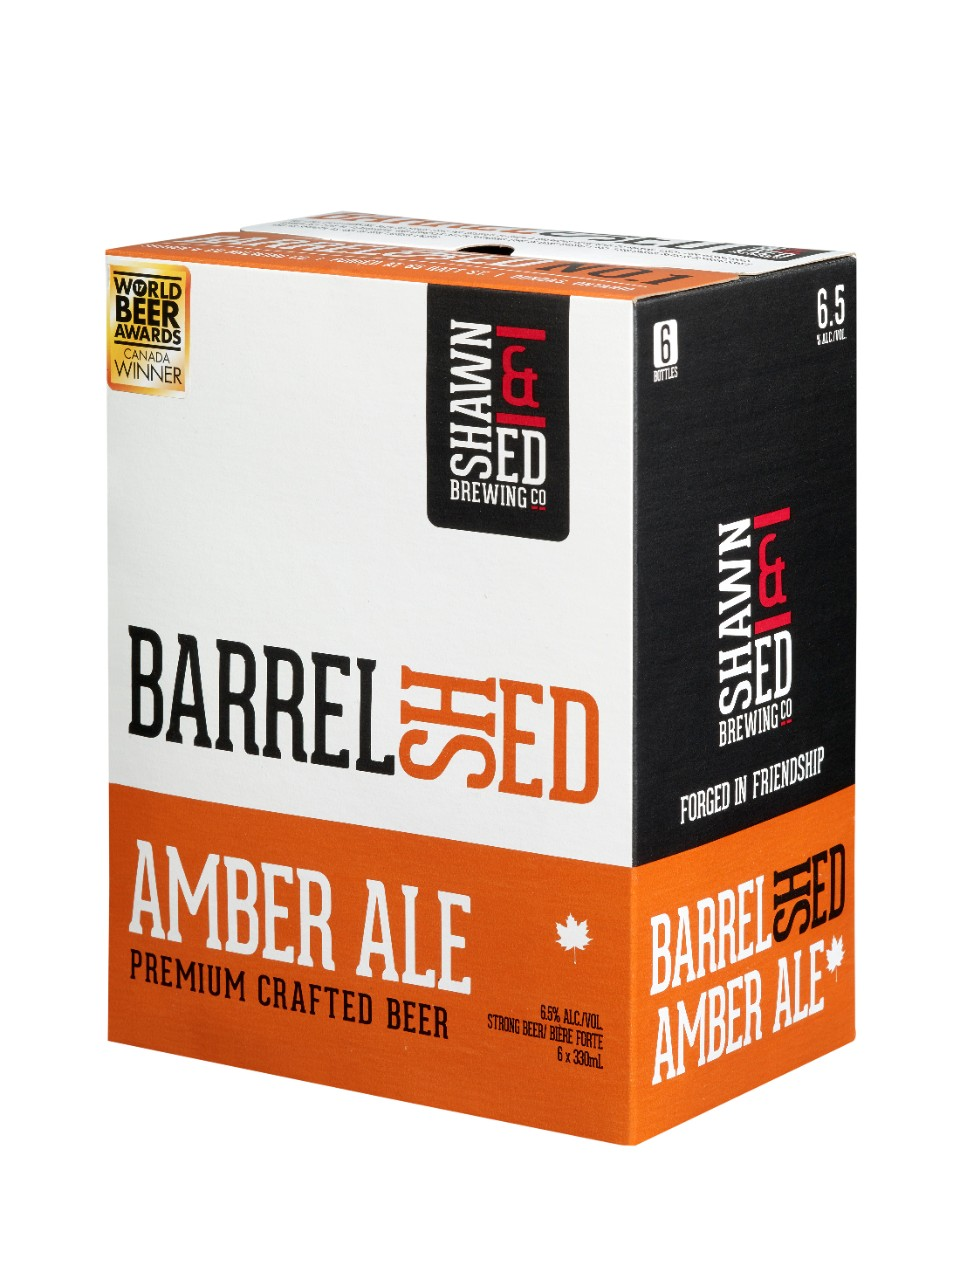 Shawn & Ed Brewing Co. BarrelShed No. 1 from LCBO